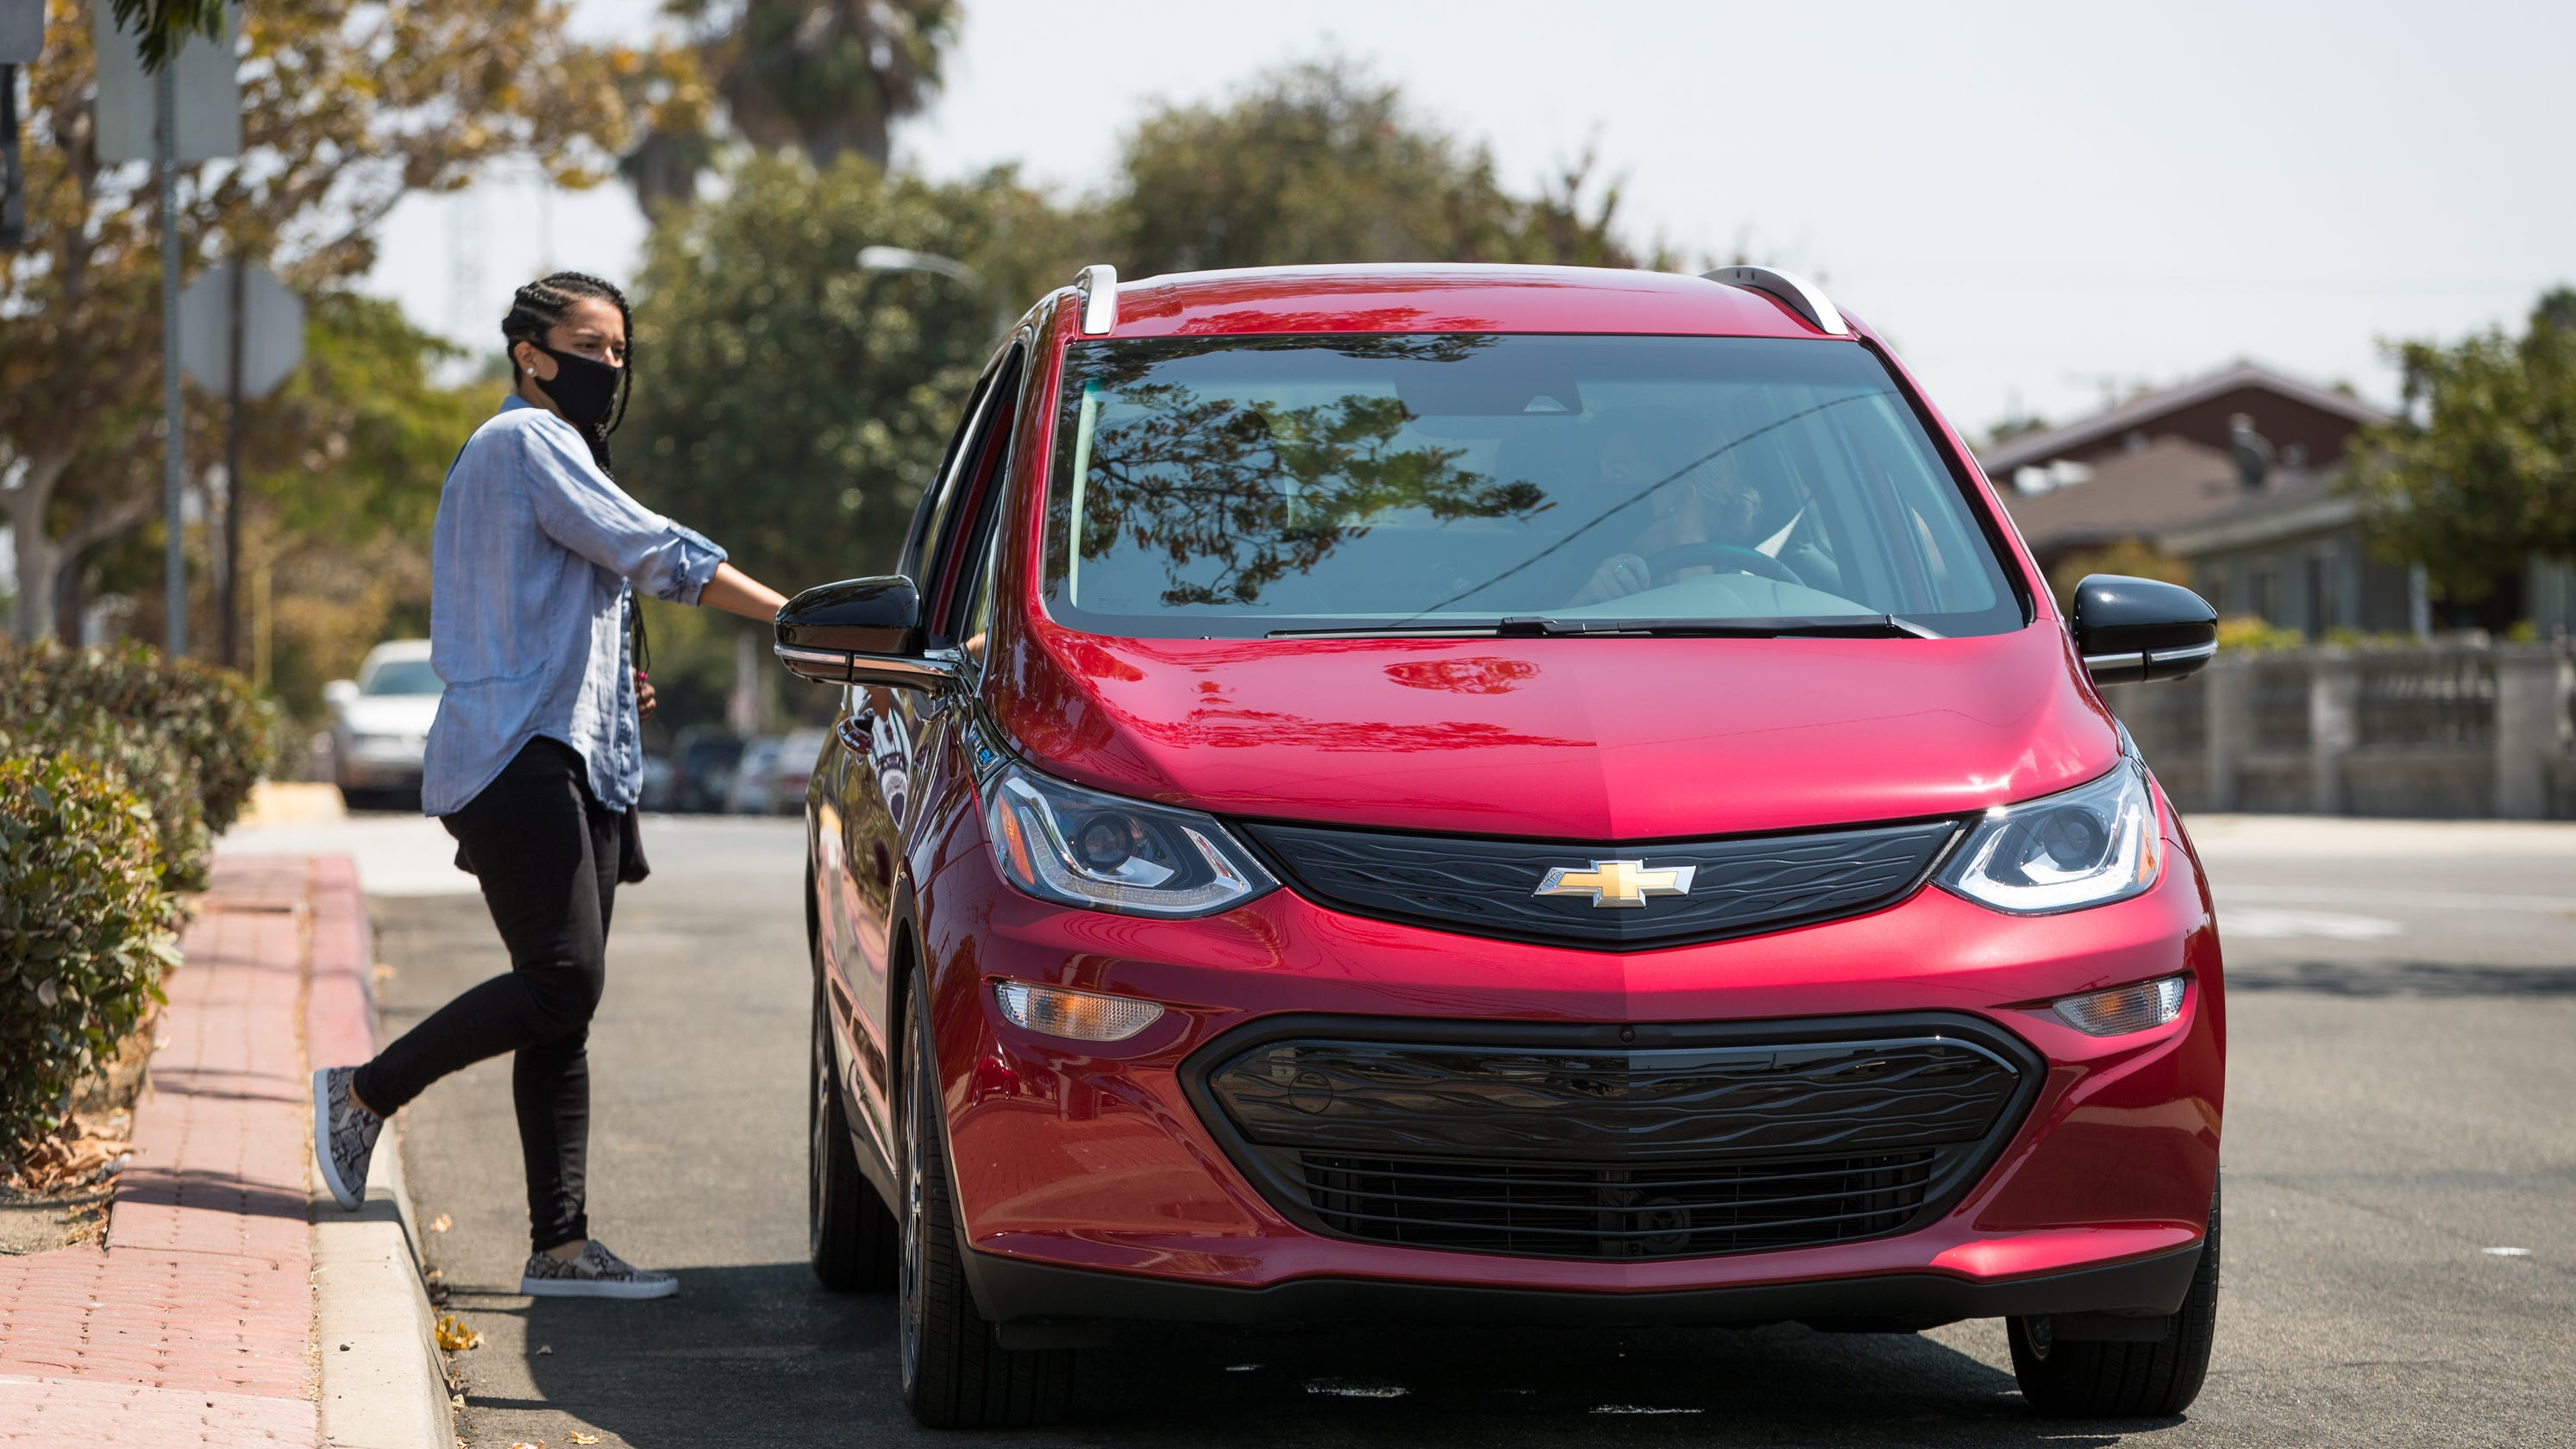 GM partners with Uber in a deal to get drivers into electric vehicles